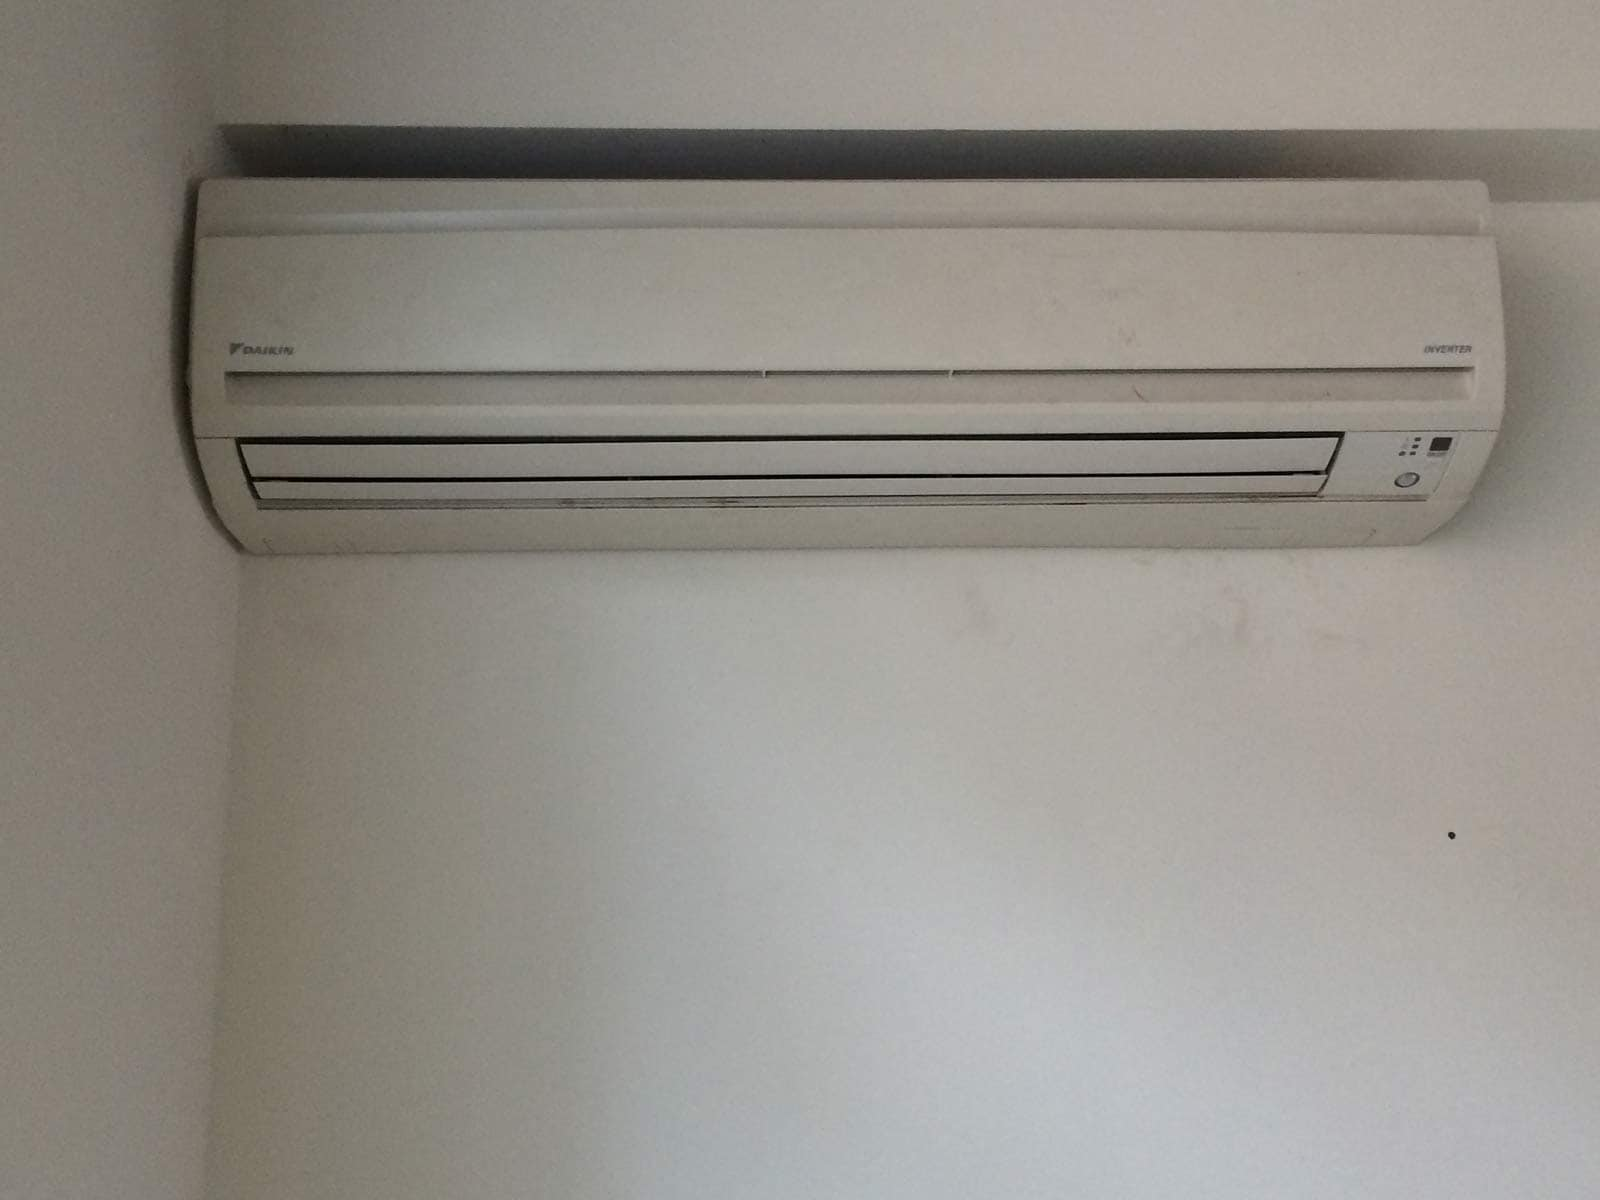 Frostbyte Air Conditioning Air Conditioning Installation & Service  #595249